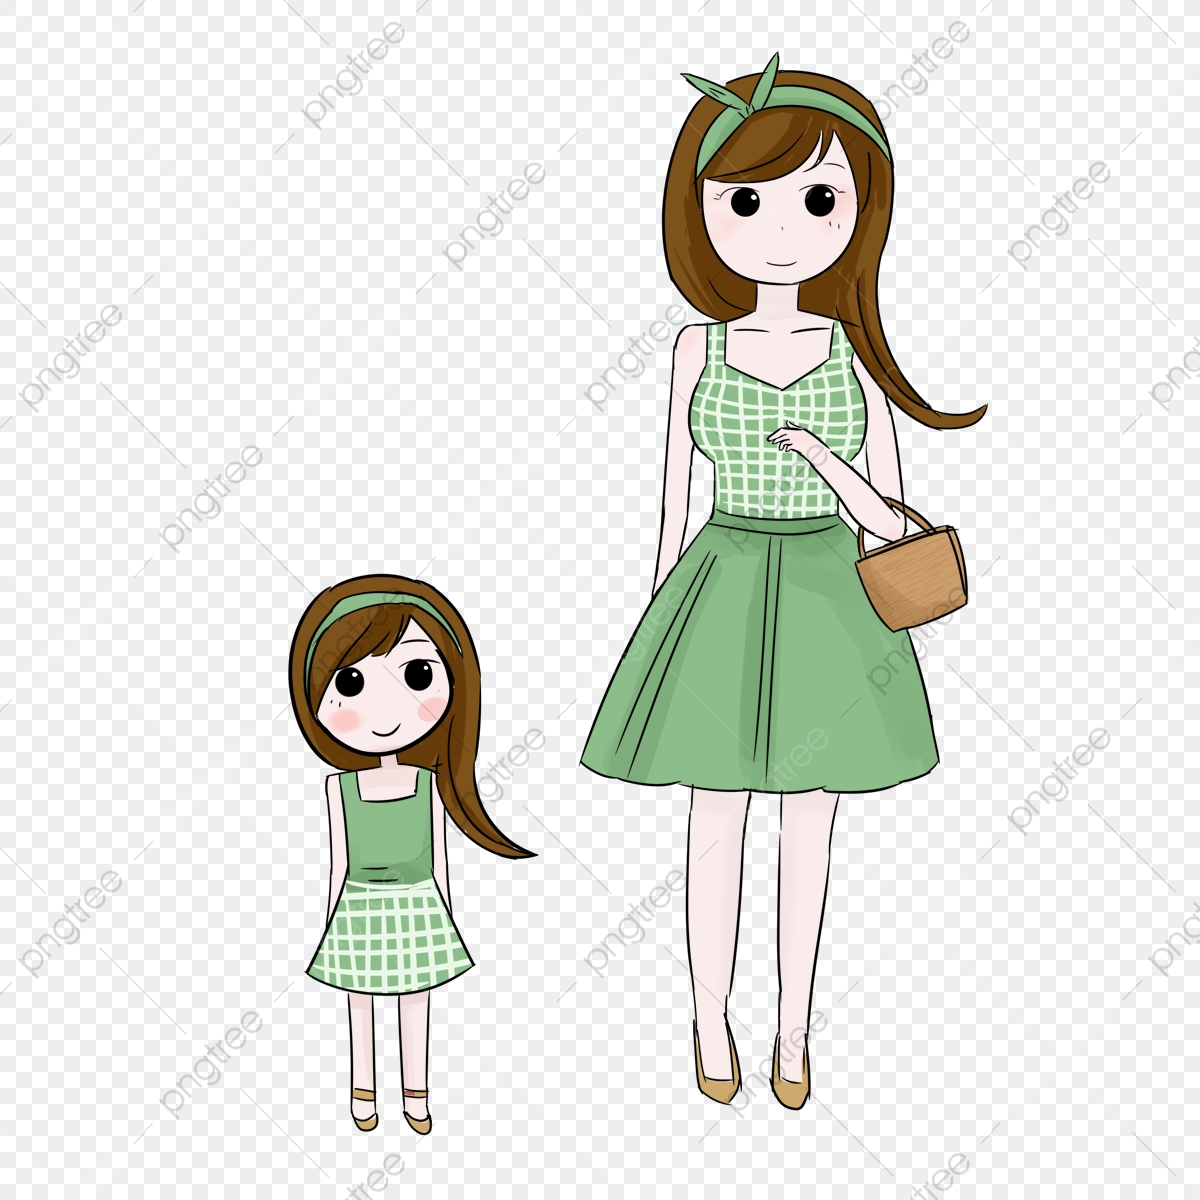 Cartoon Mother And Daughter, Cartoon Clipart, Mother And Daughter ... royalty free library